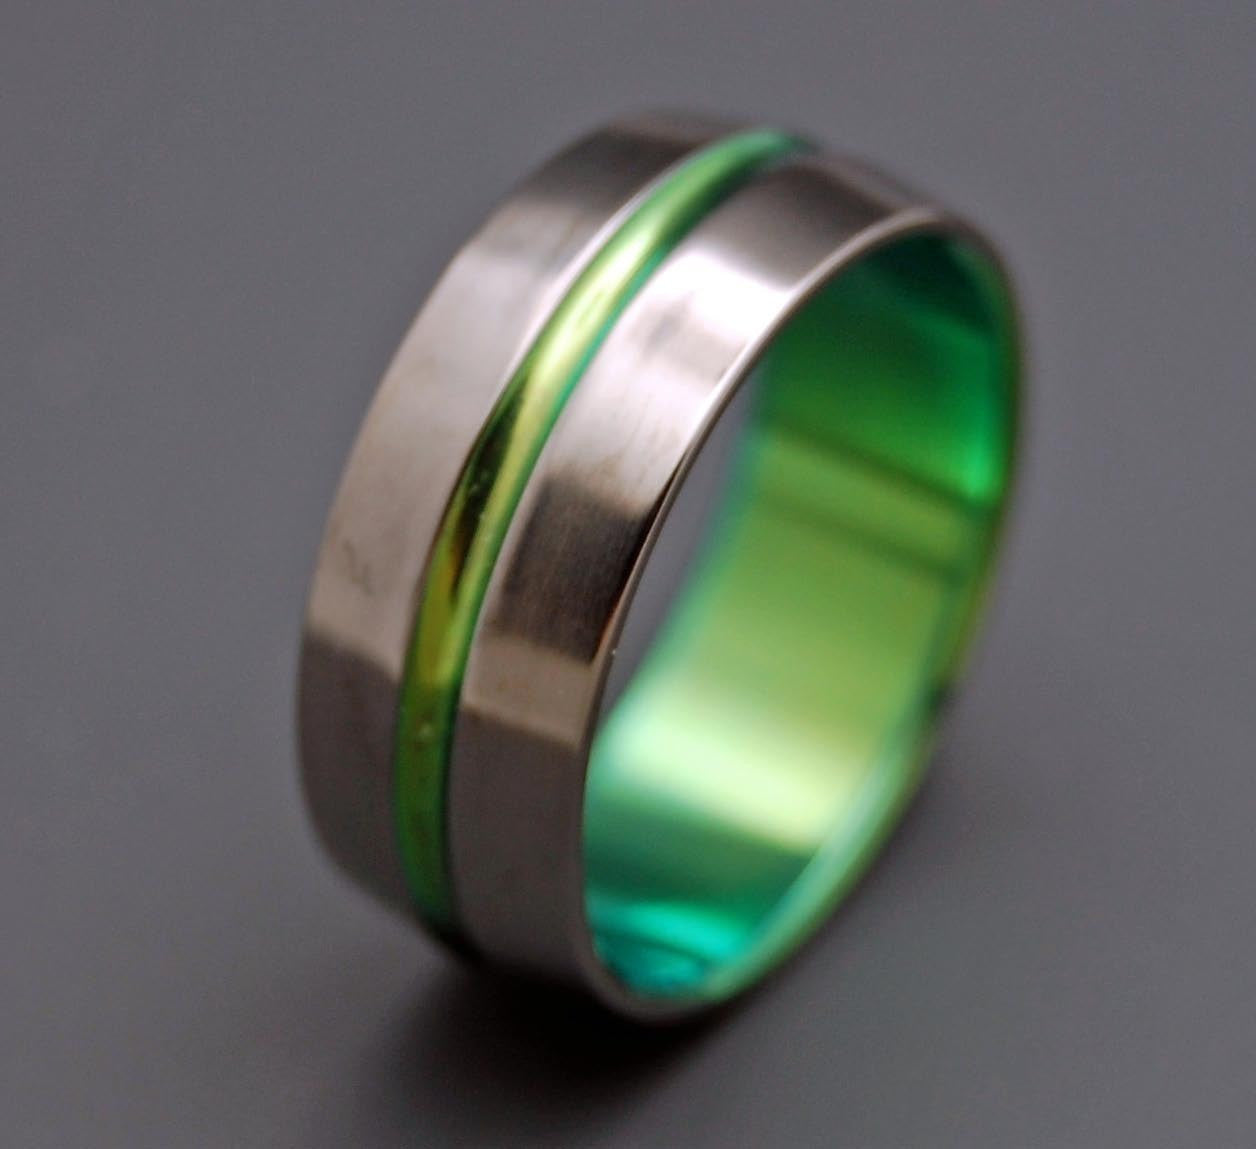 engagement nano jewelry band stone wedding gem ring wholesale men rings feelcolor product russian mens for new emerald genuine green sterling sliver fine